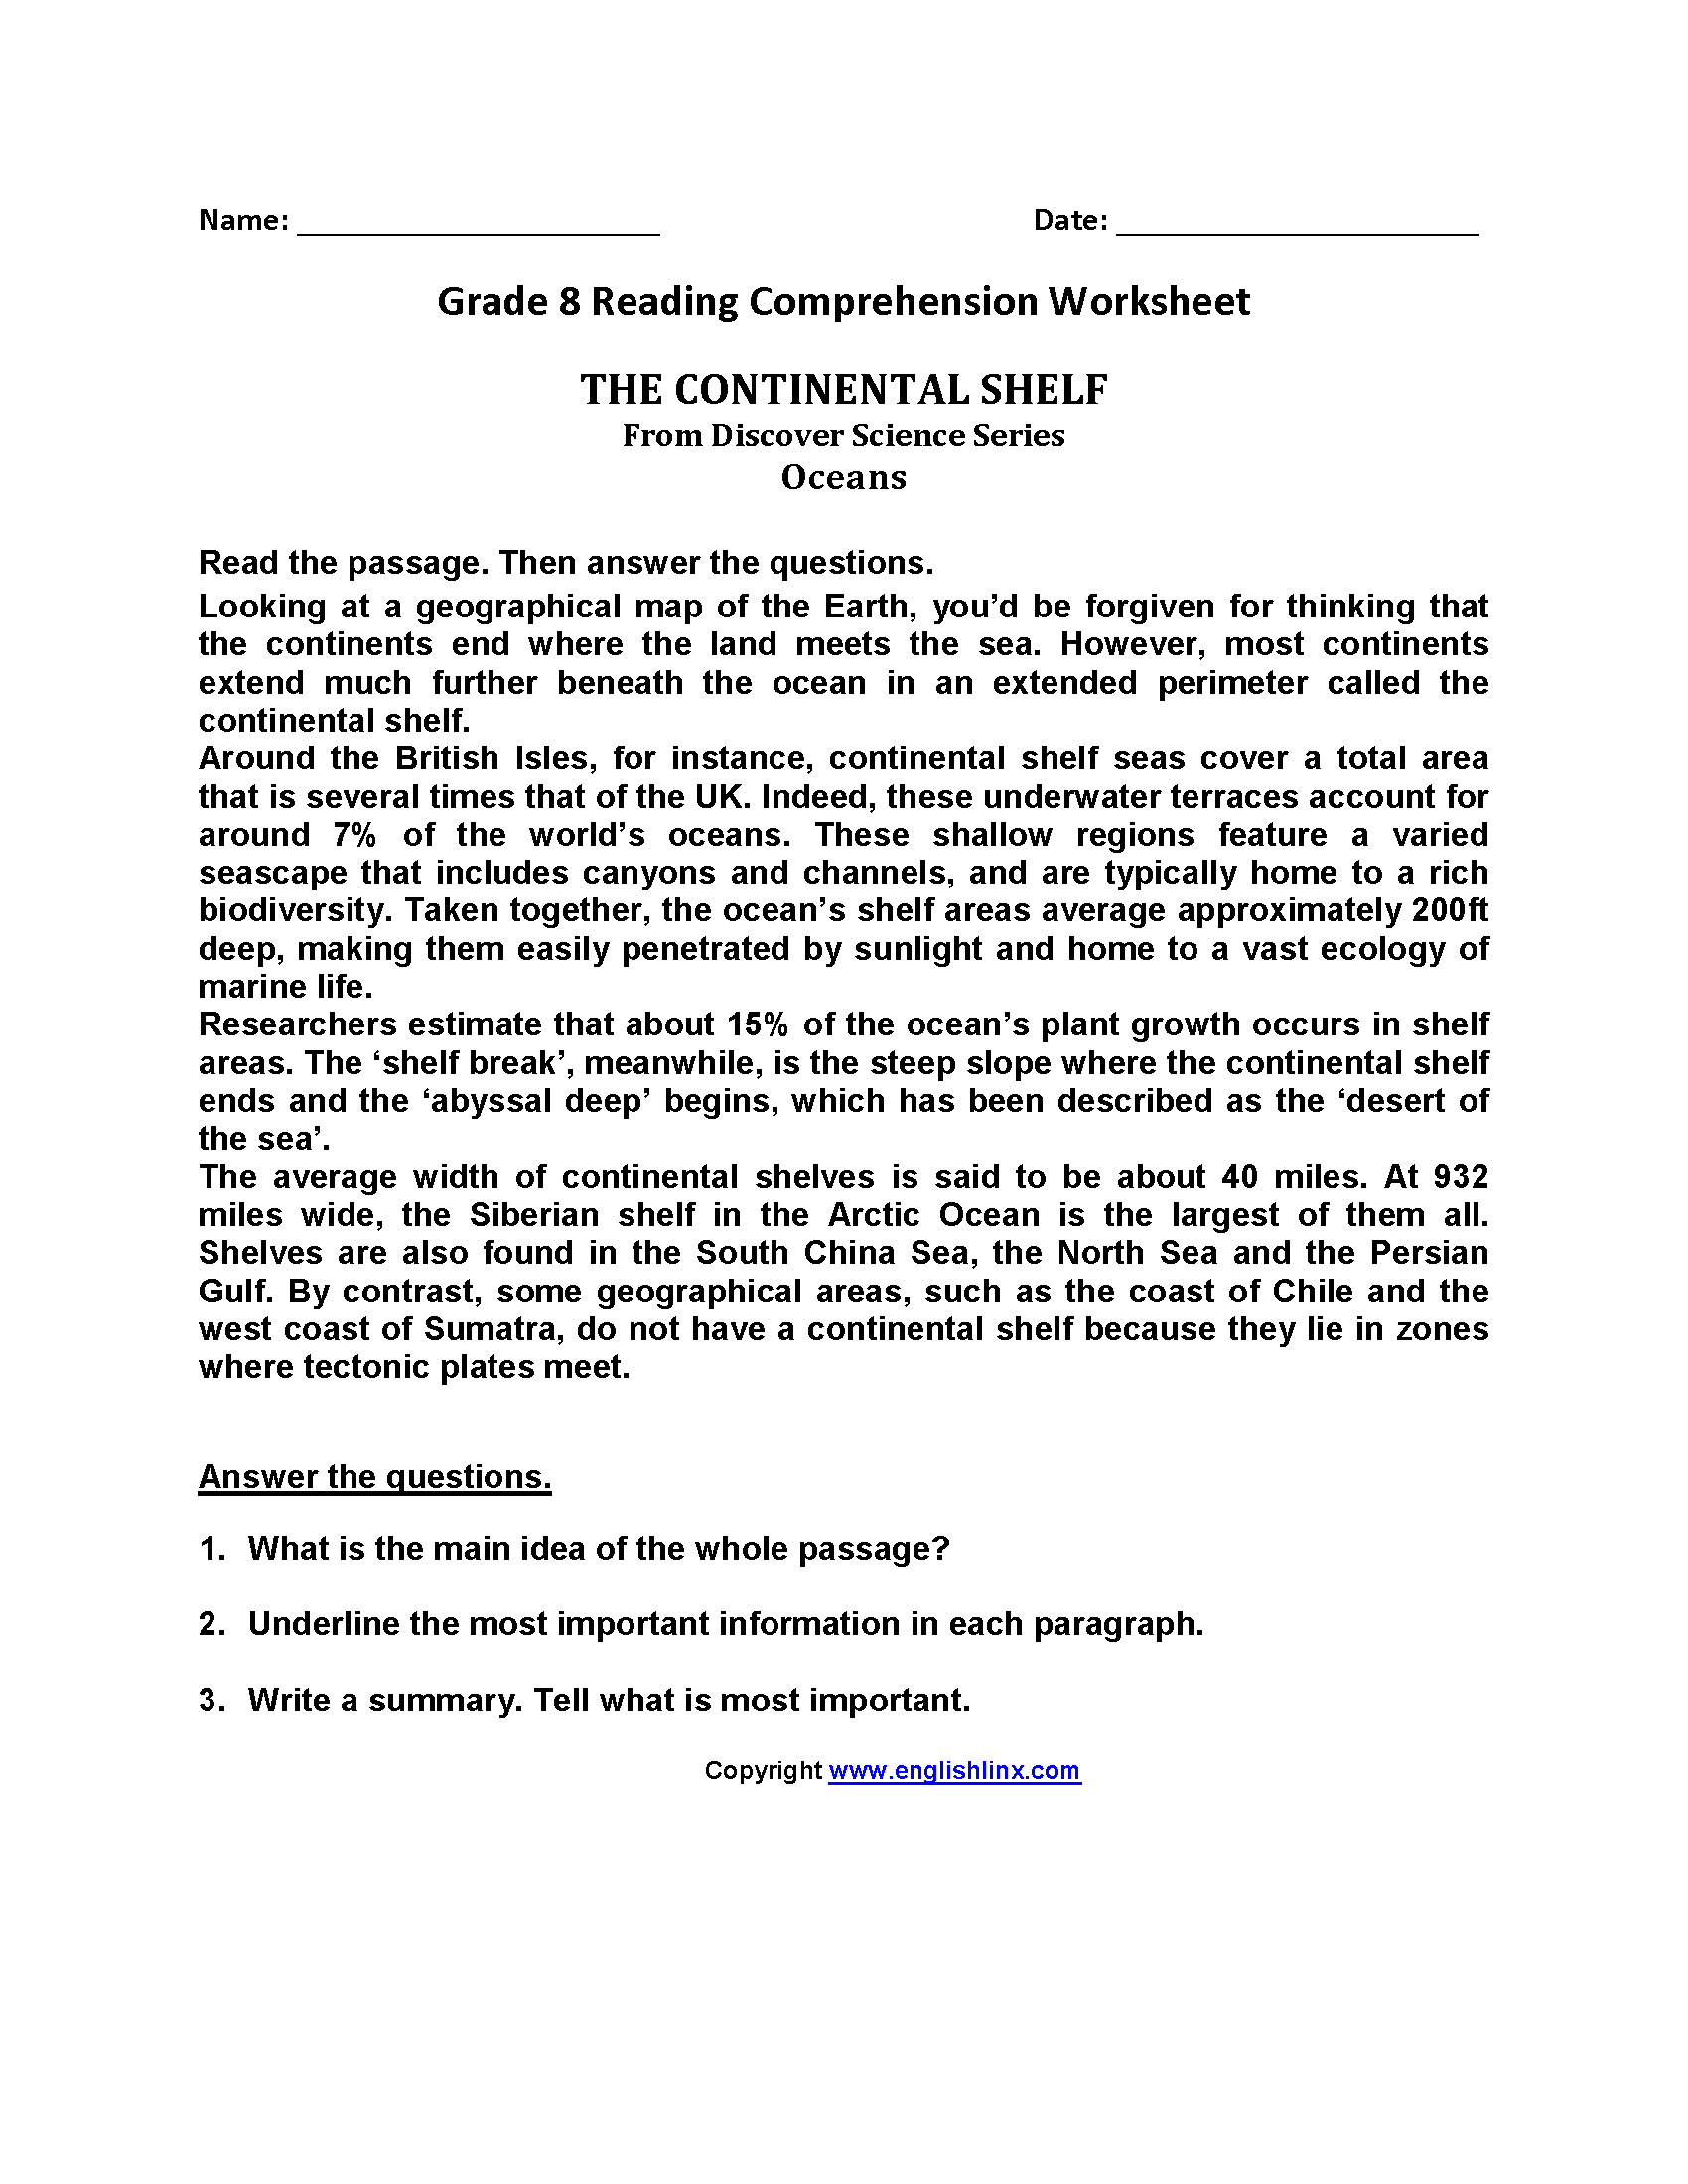 Reading Comprehension 8th Grade Worksheet Printable Worksheets And Activities For Teachers Parents Tutors And Homeschool Families An easier (though less exact) way to say this is that alliteration is when the first sounds in words repeat. printable worksheets and activities for teachers parents tutors and homeschool families